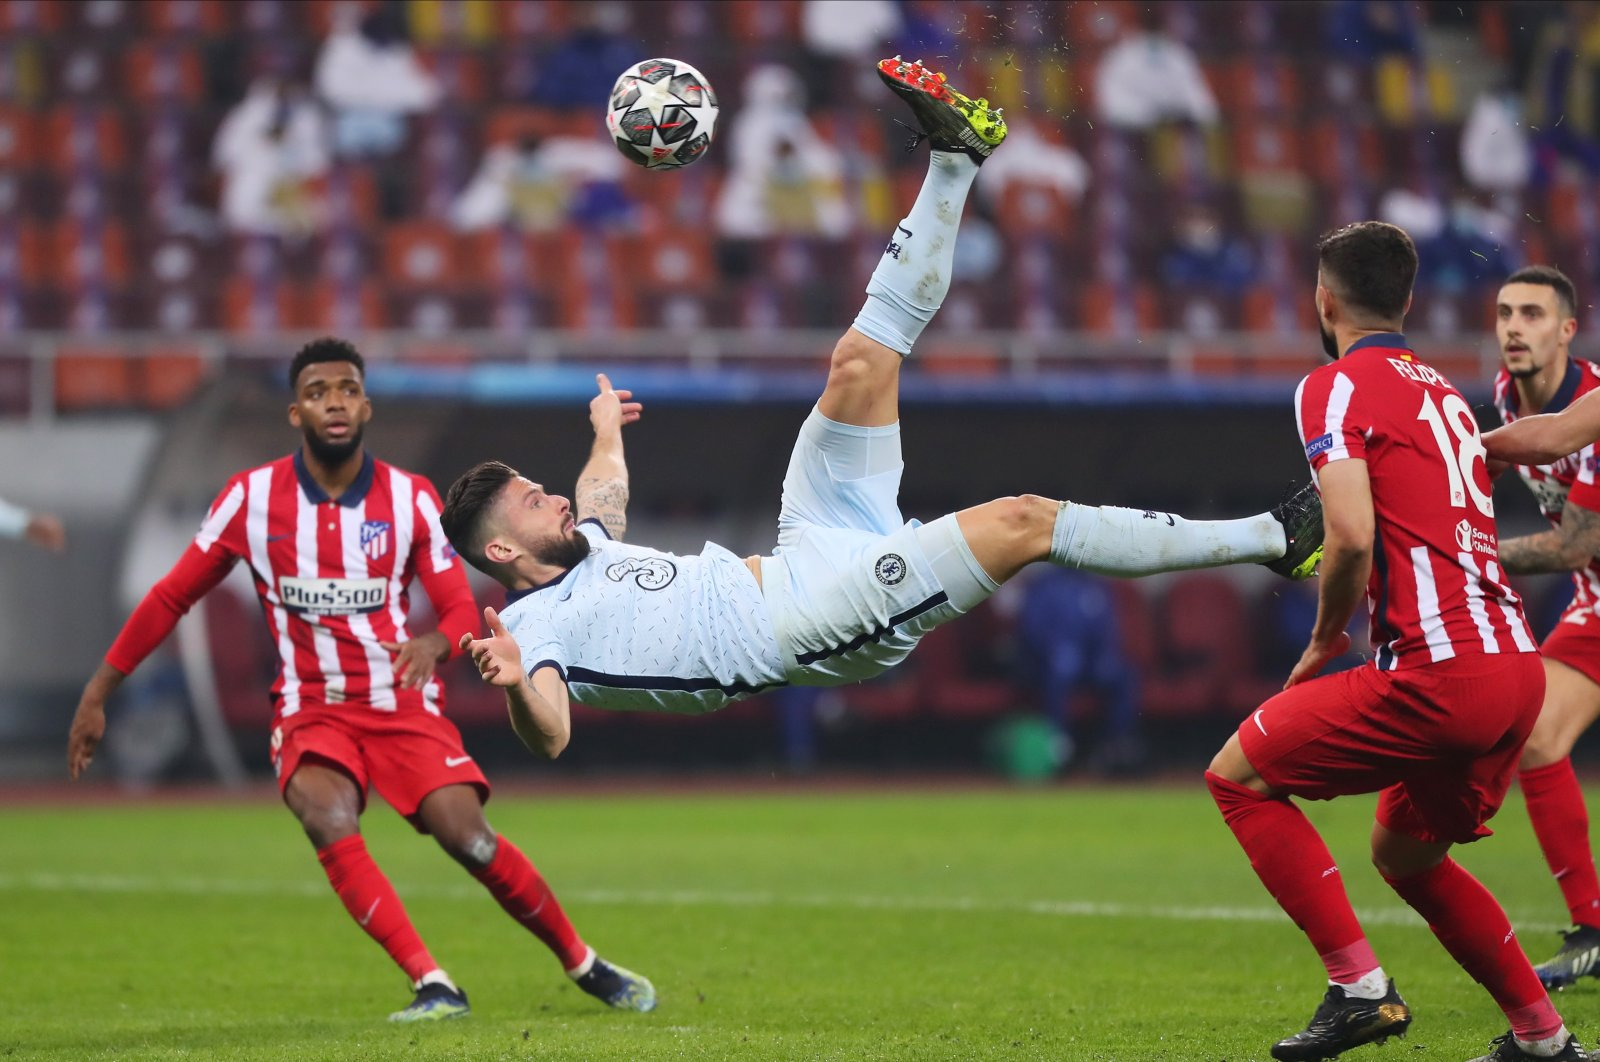 Chelsea's Olivier Giroud scores his side's only goalagainst Atletico Madrid in the UEFA Champions League last 16 match at the Arena Nationala, Bucharest, Romania,Feb. 23, 2021.